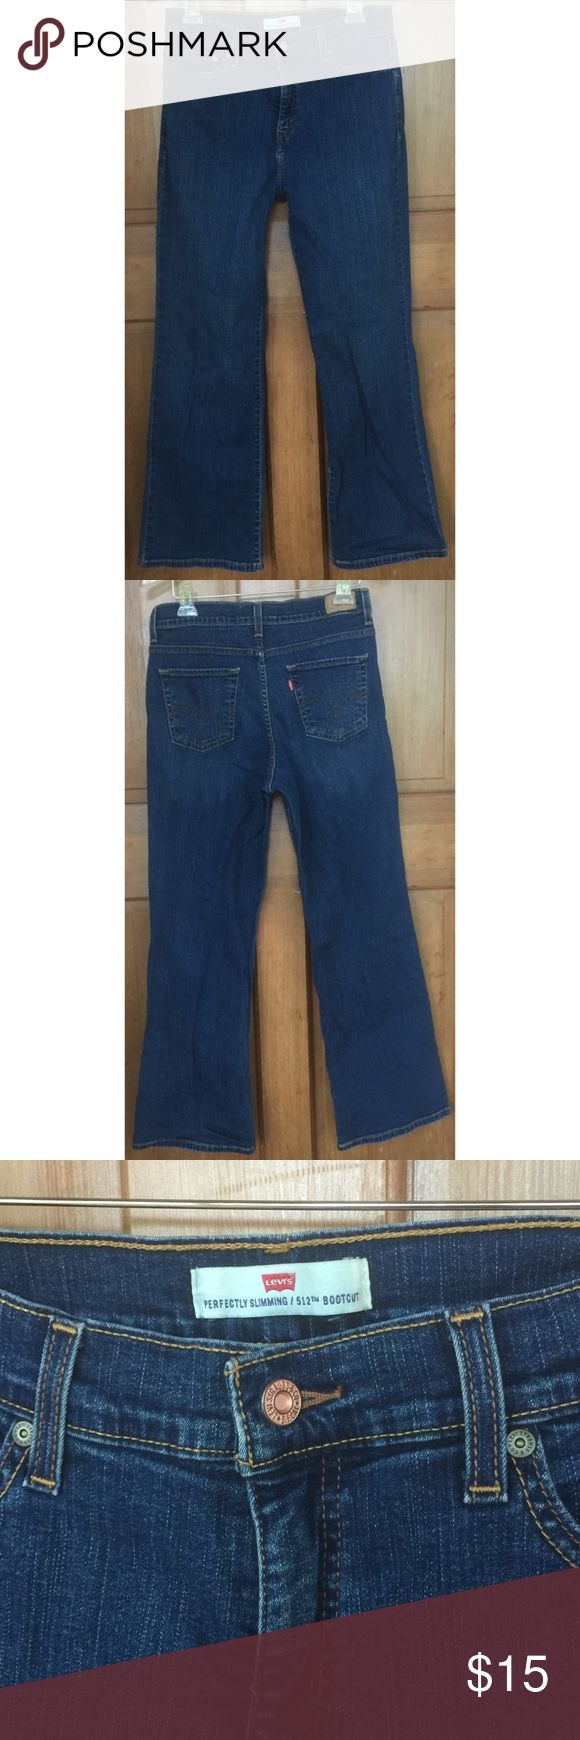 """Levi's 512 Perfect Slimming Boot Stretch Jeans 12 Pair of Levi 512 Perfectly Slimming bootcut jeans, 12 S/C. Nice overall condition. Laying flat they measure approximately:                                    Waist: 14.5, Rise 10"""", Inseam: 28"""". Thanks!! Levi's Jeans Boot Cut"""